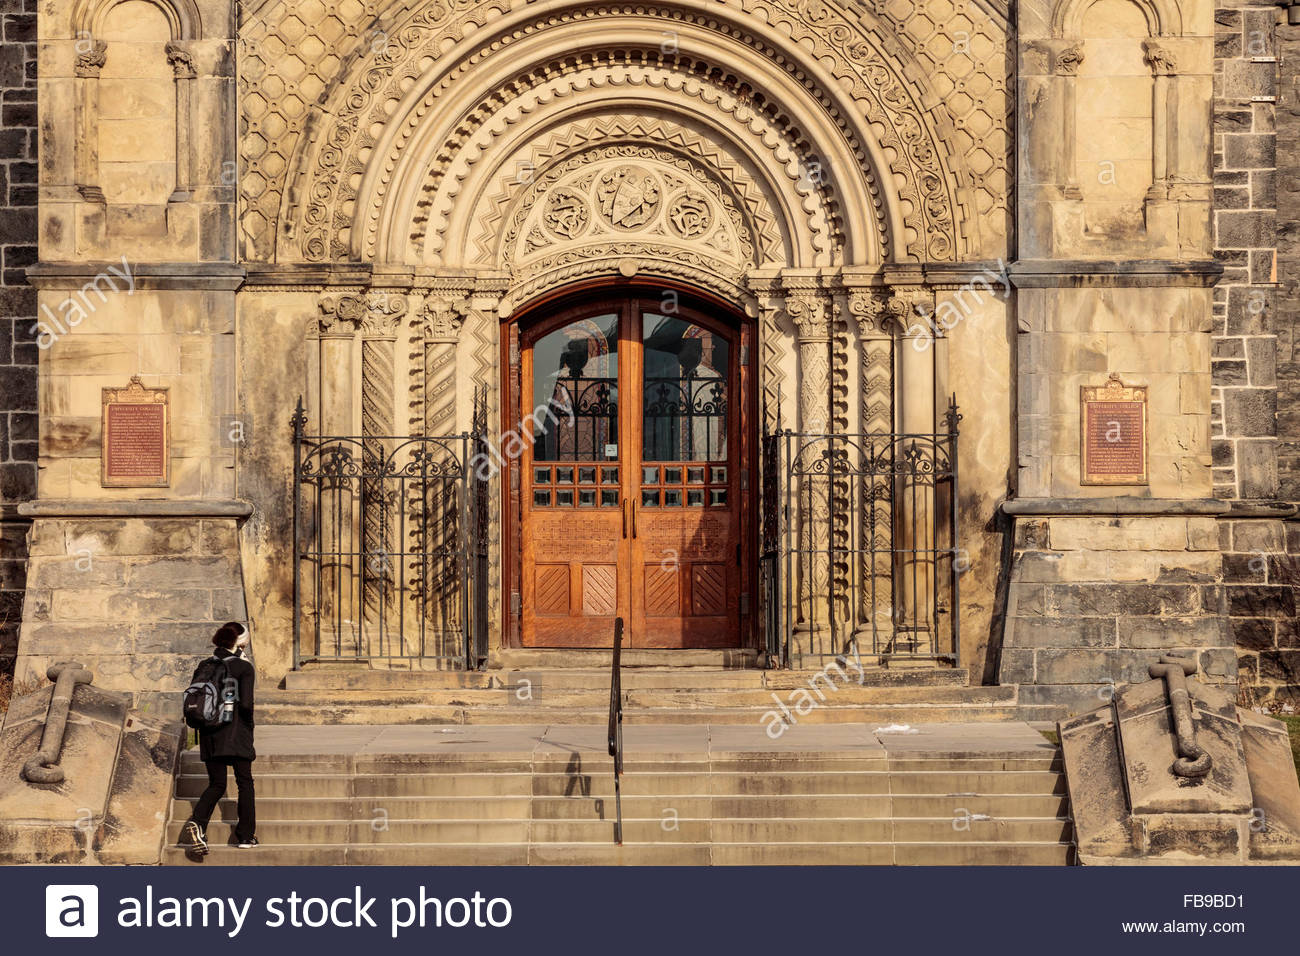 Front doors of University College in romanesque style at the University of Toronto in Toronto Ontario Canada - Stock Image